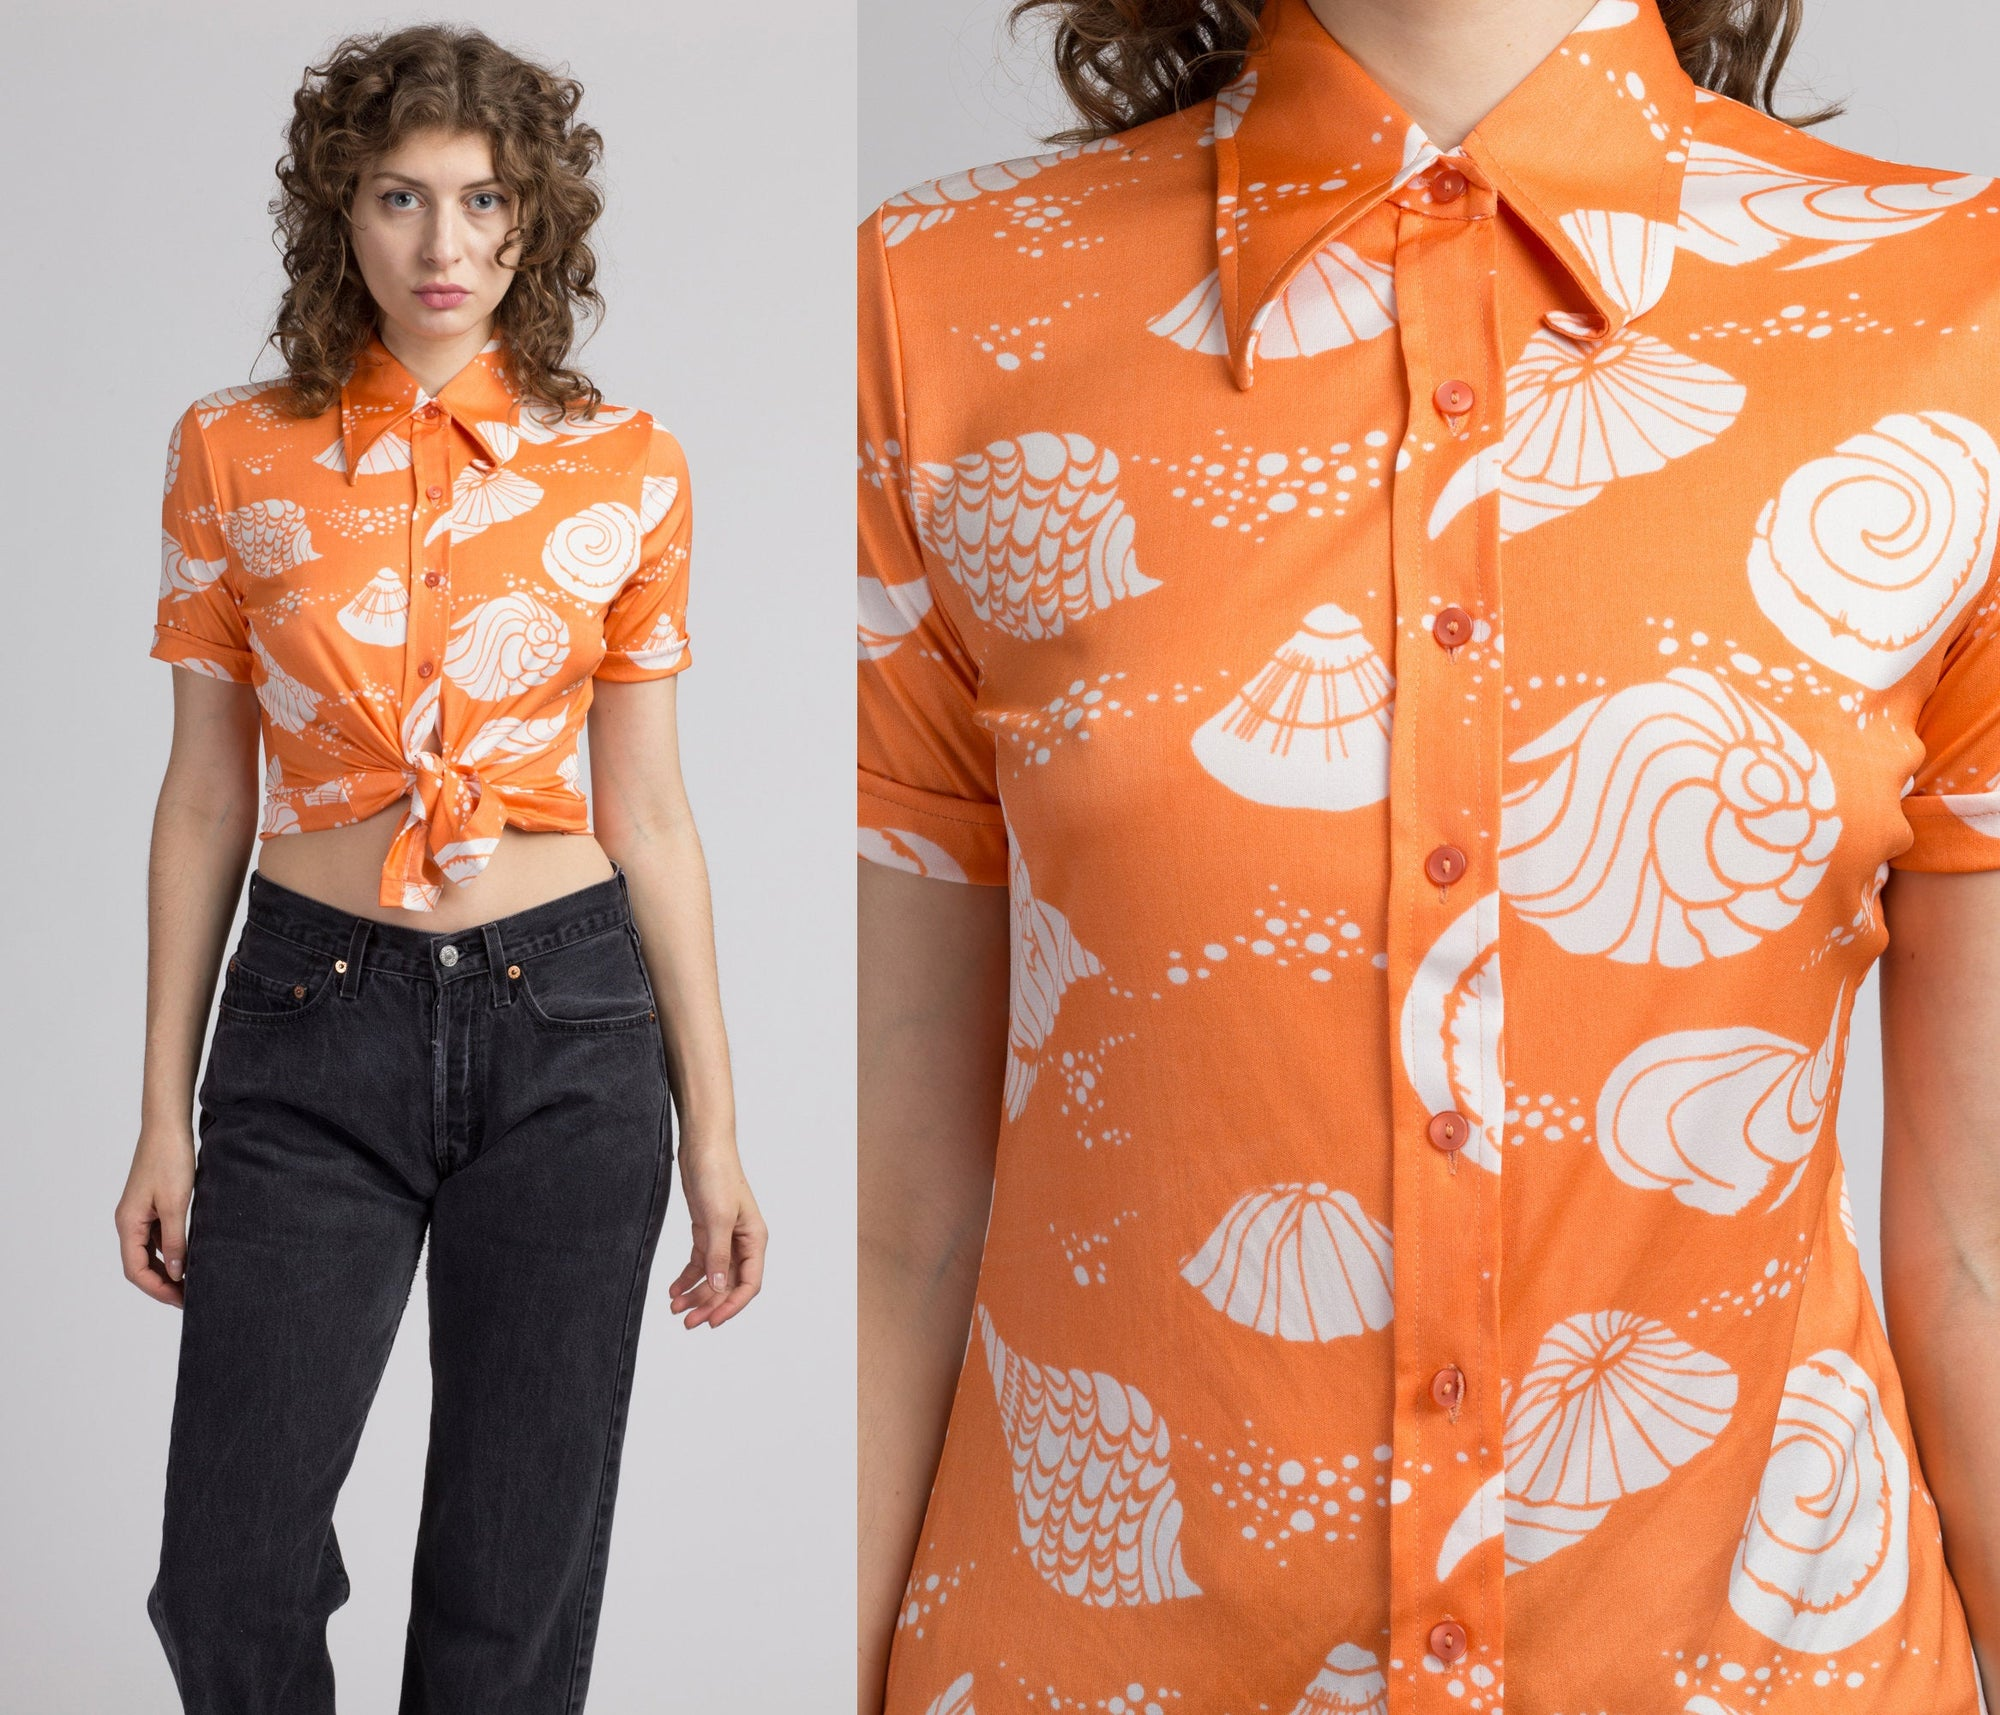 70s Novelty Seashell Print Top - Medium